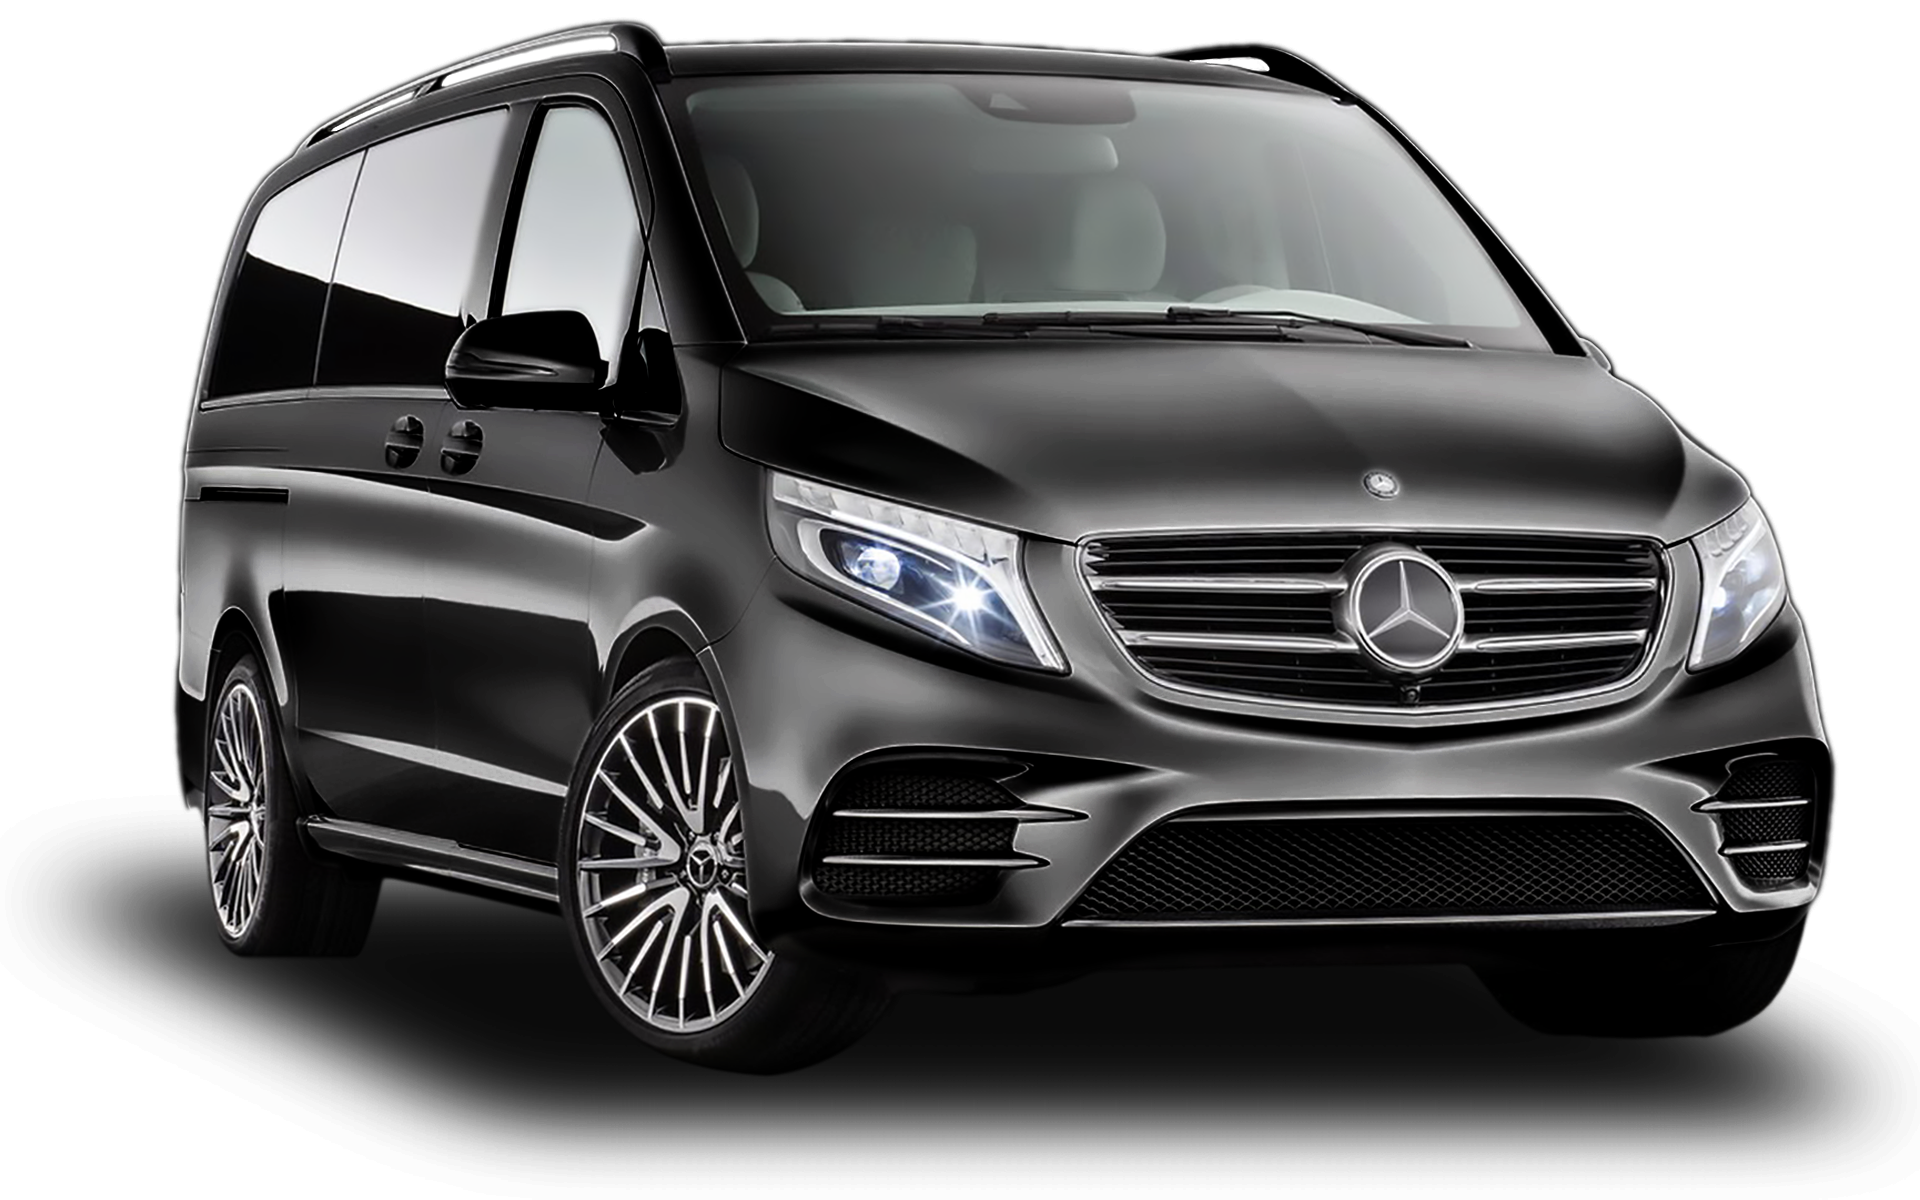 mercedes benz v class edelsway. Cars Review. Best American Auto & Cars Review